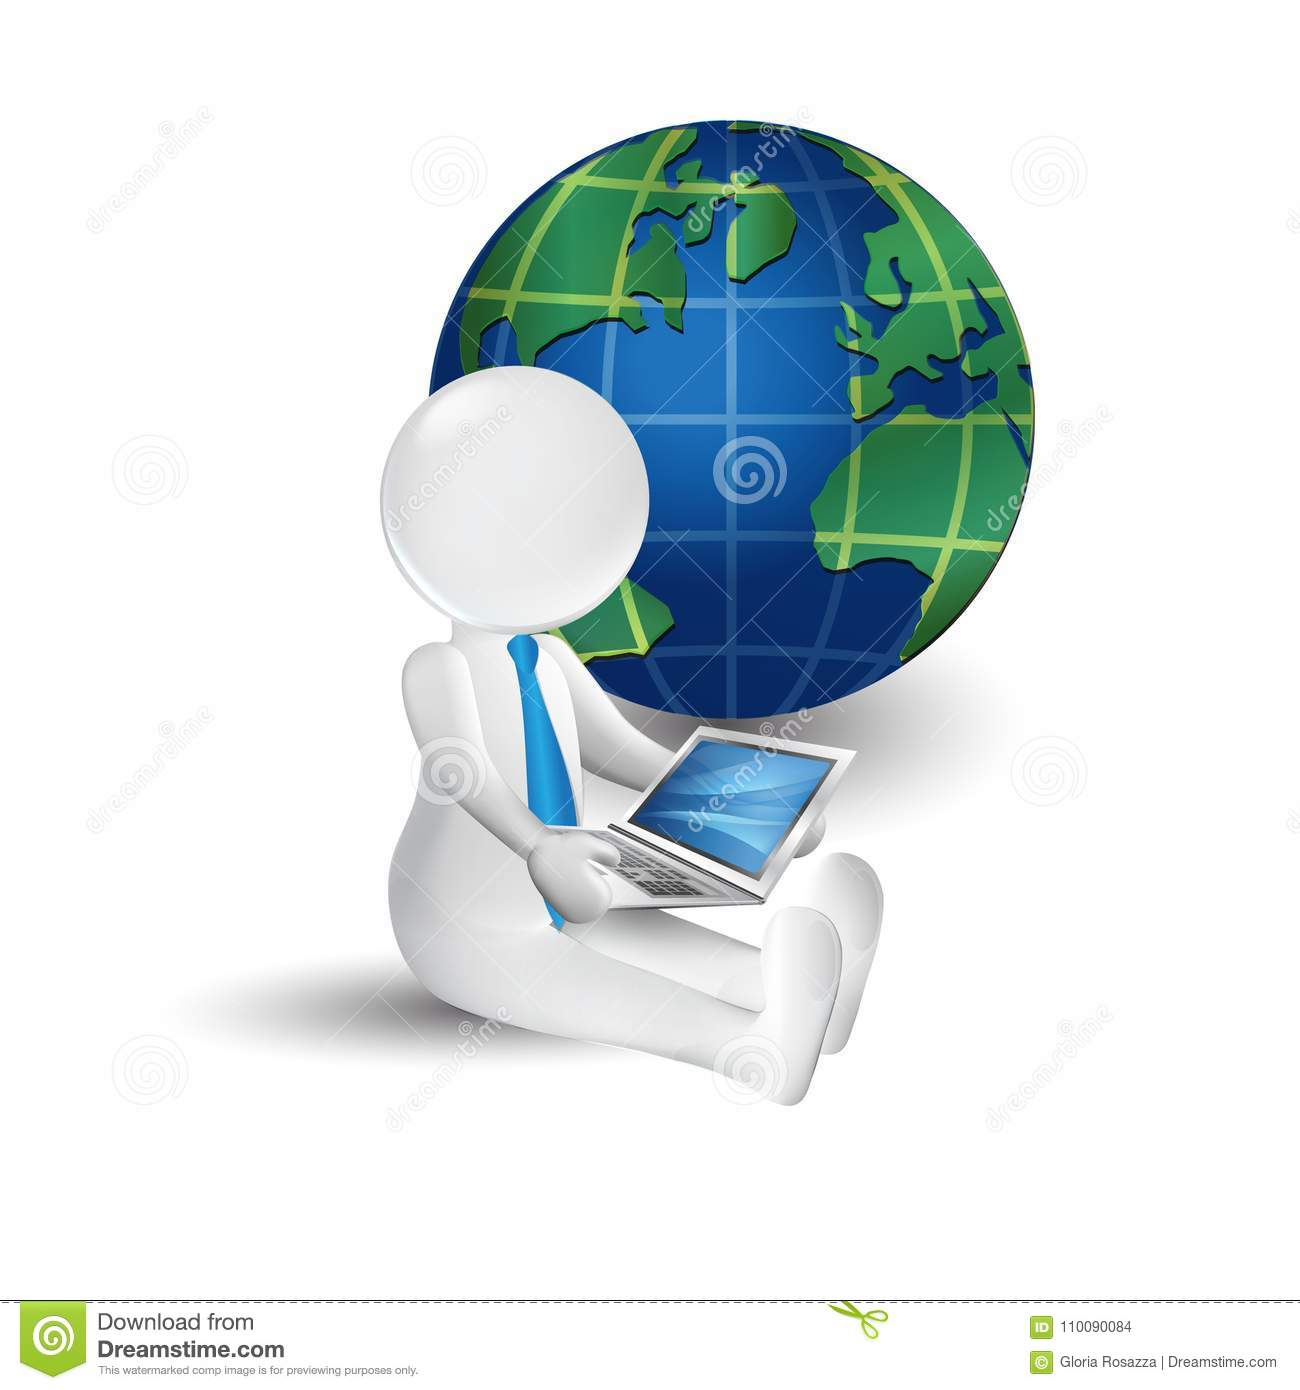 3d white people man with laptop and world map icon logo stock vector download 3d white people man with laptop and world map icon logo stock vector illustration gumiabroncs Choice Image